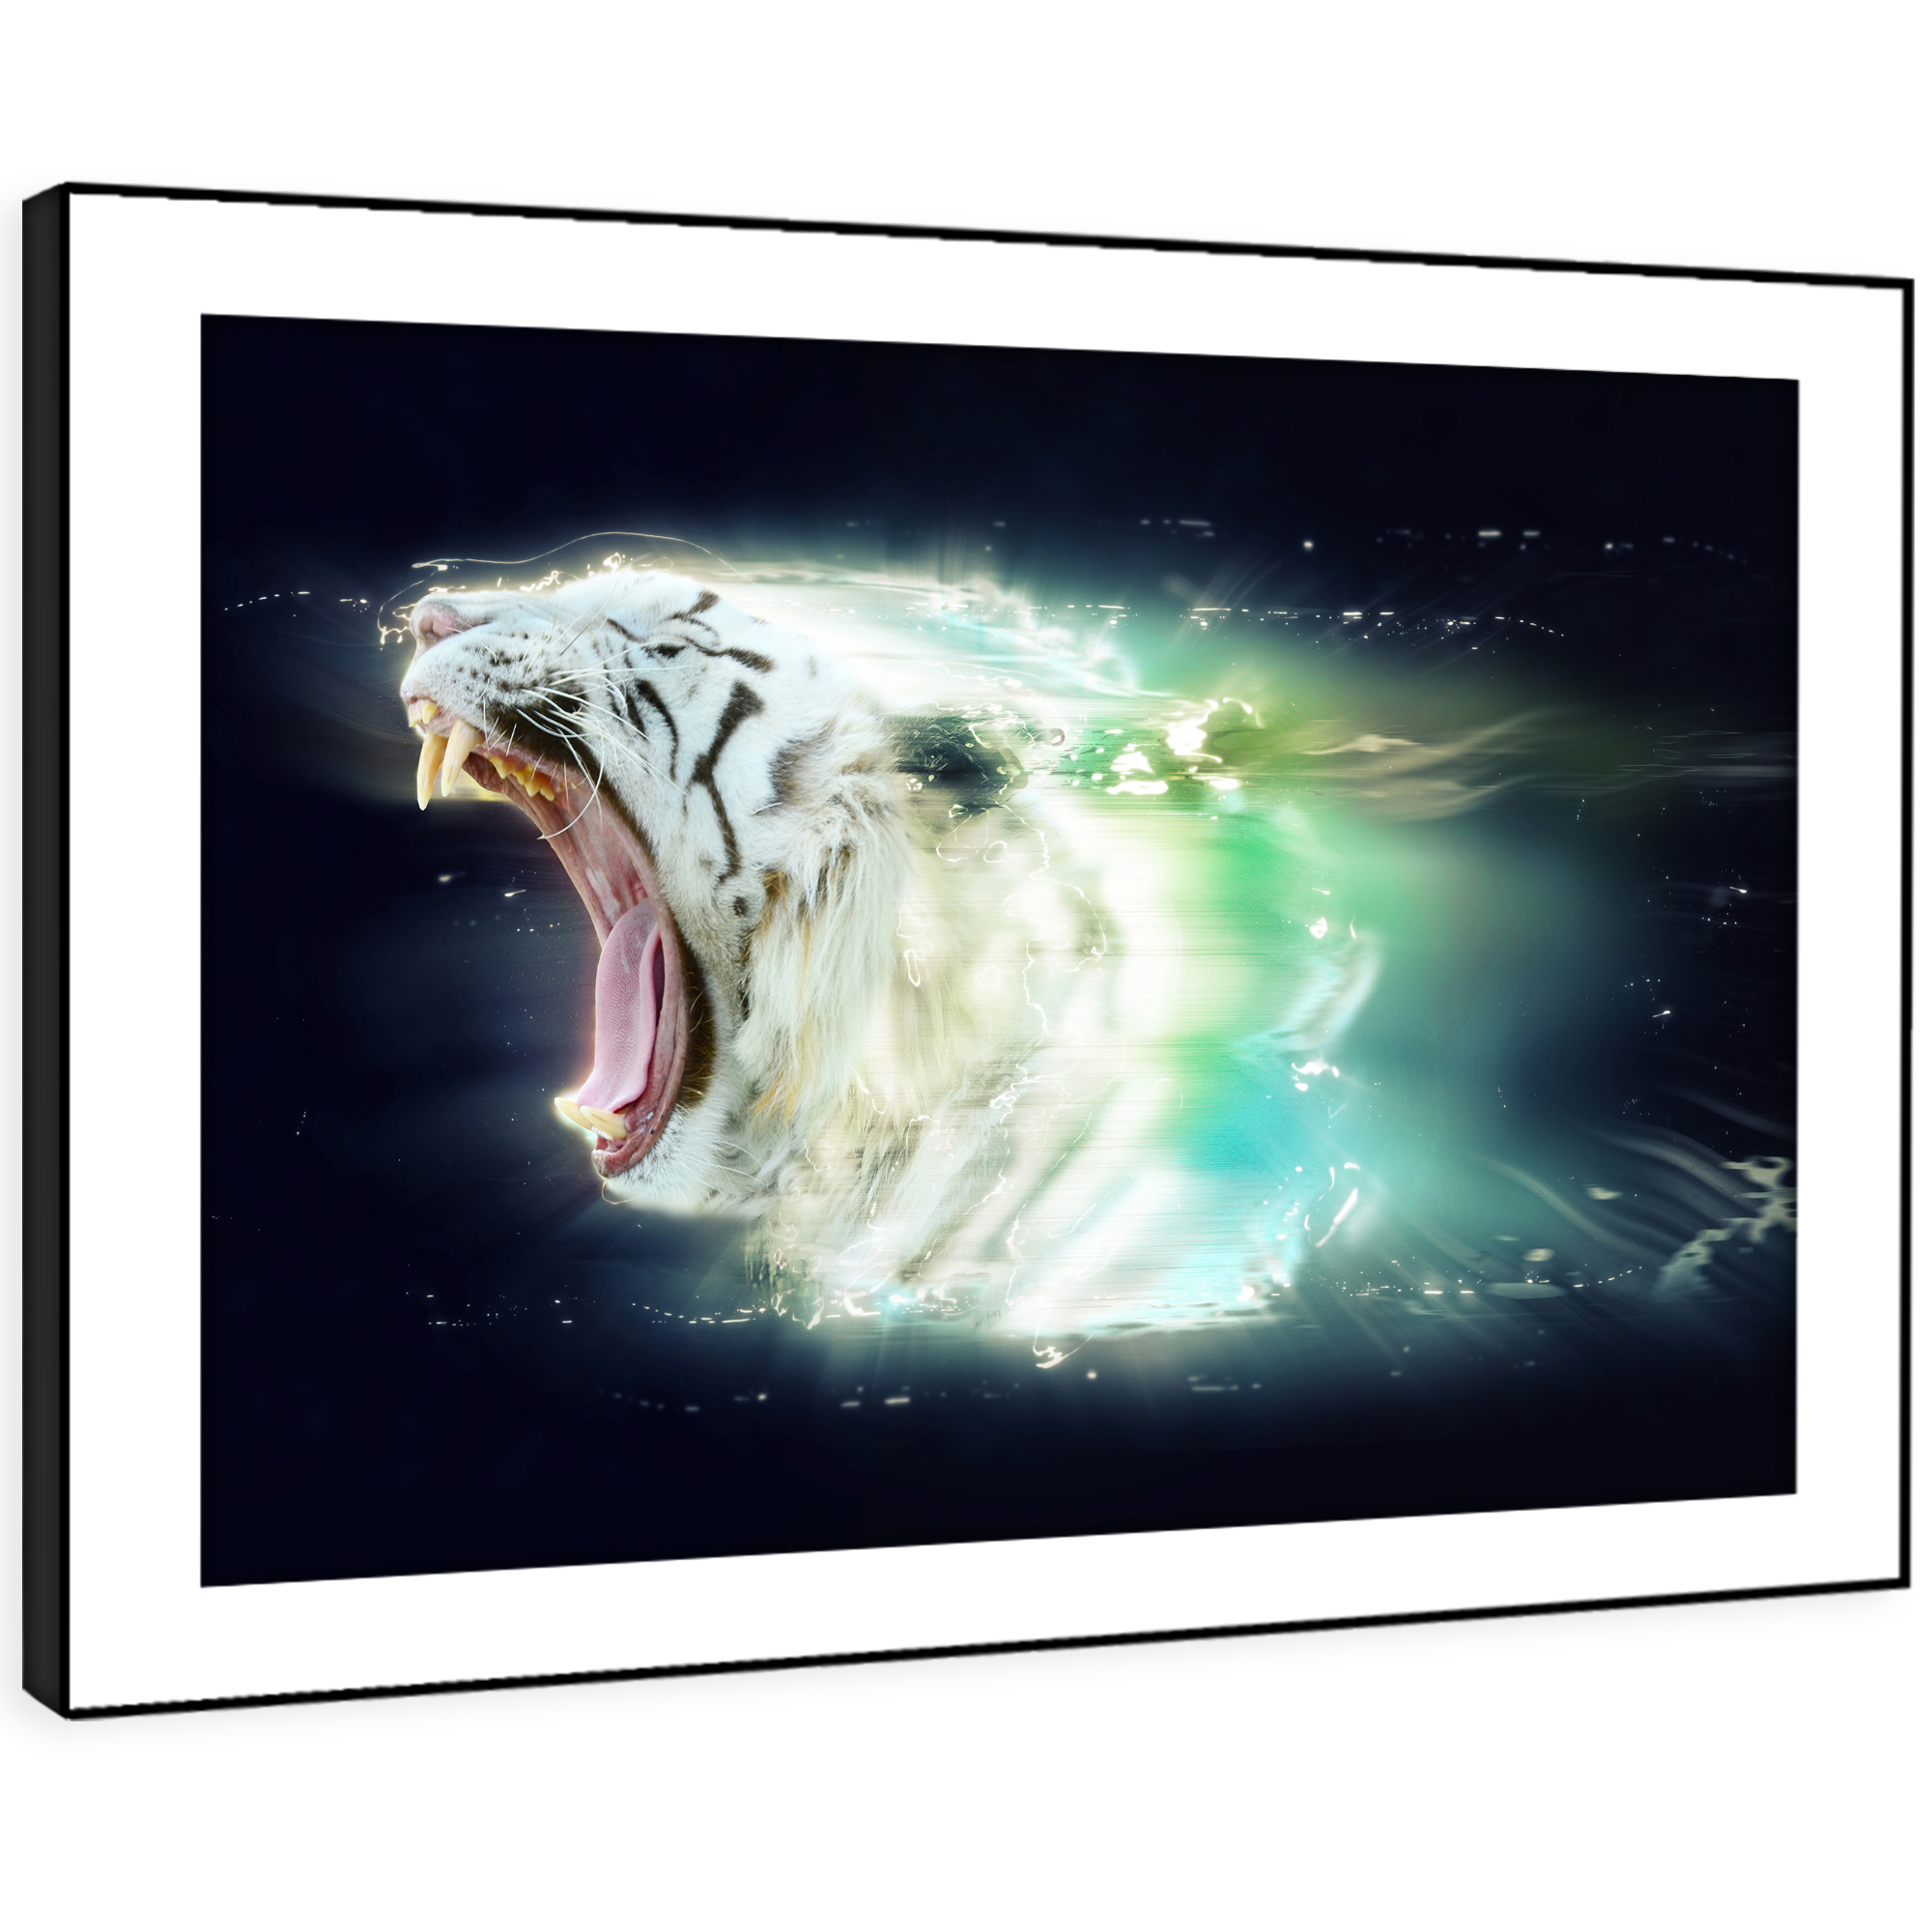 A426 Weiß Tiger Teal Lighting  Funky Animal Framed Wall Art Large Picture Print